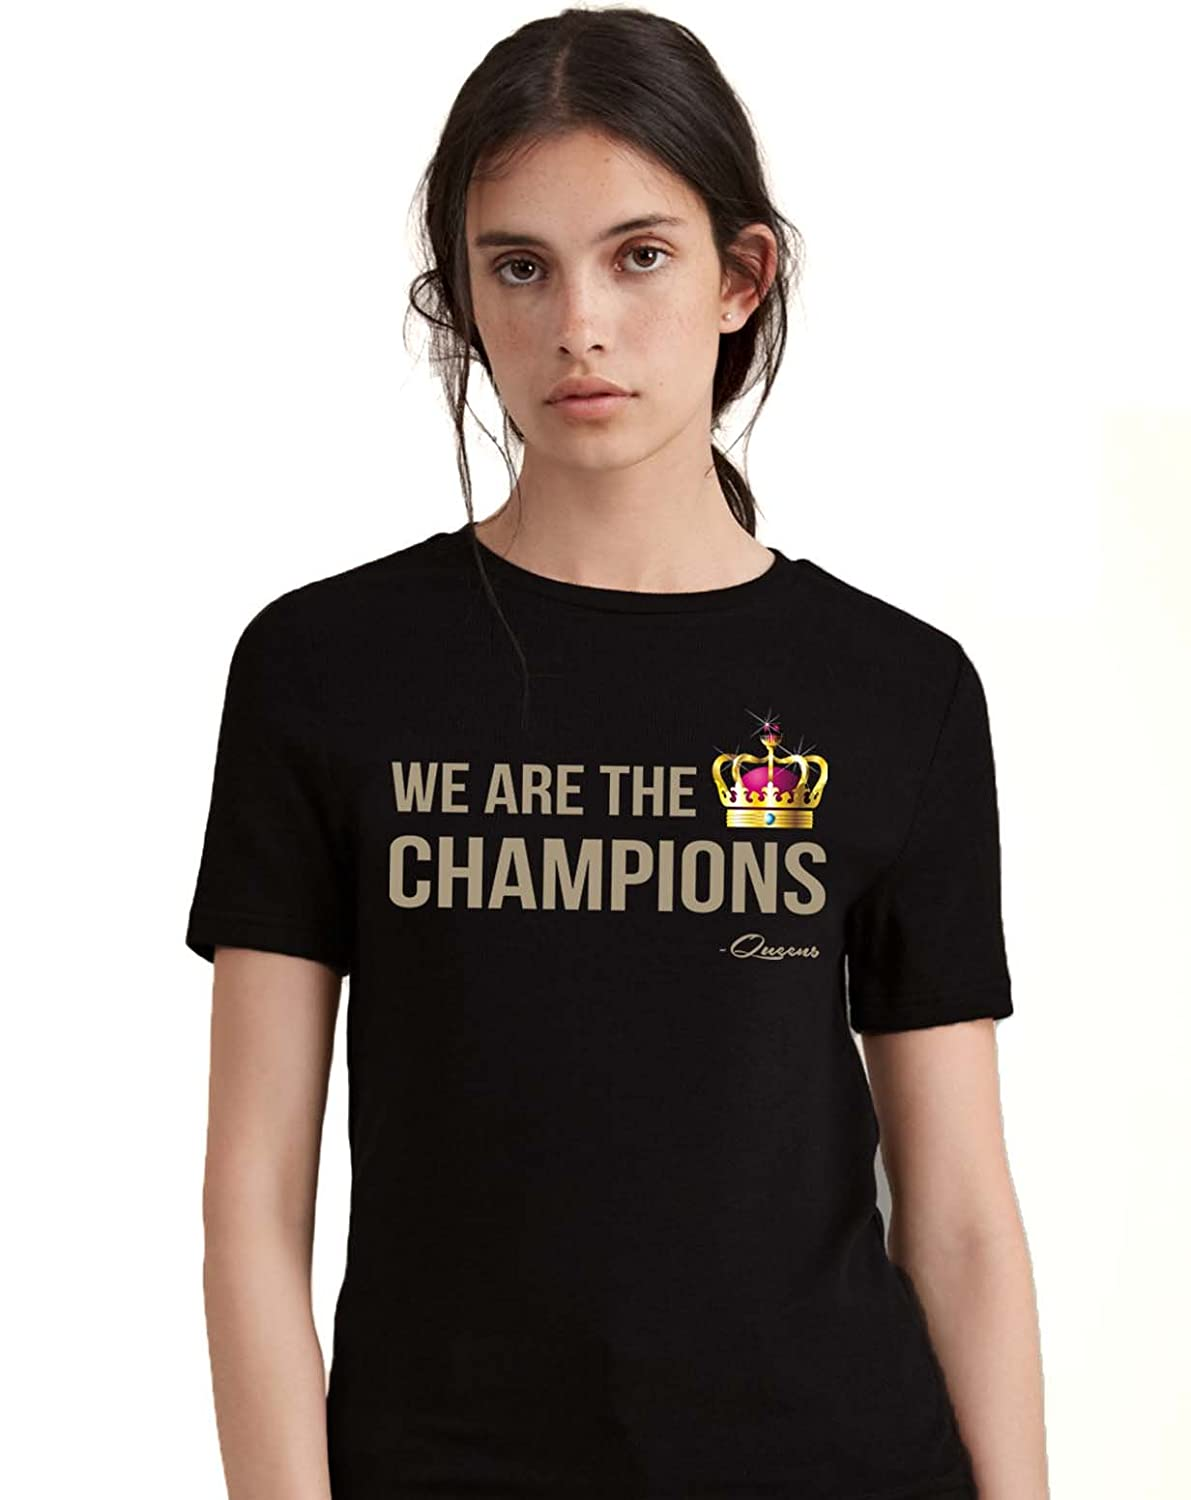 eacda35b2 We are The Champions Queen Band Tshirt - Queen Band Merchandise: Amazon.in:  Clothing & Accessories